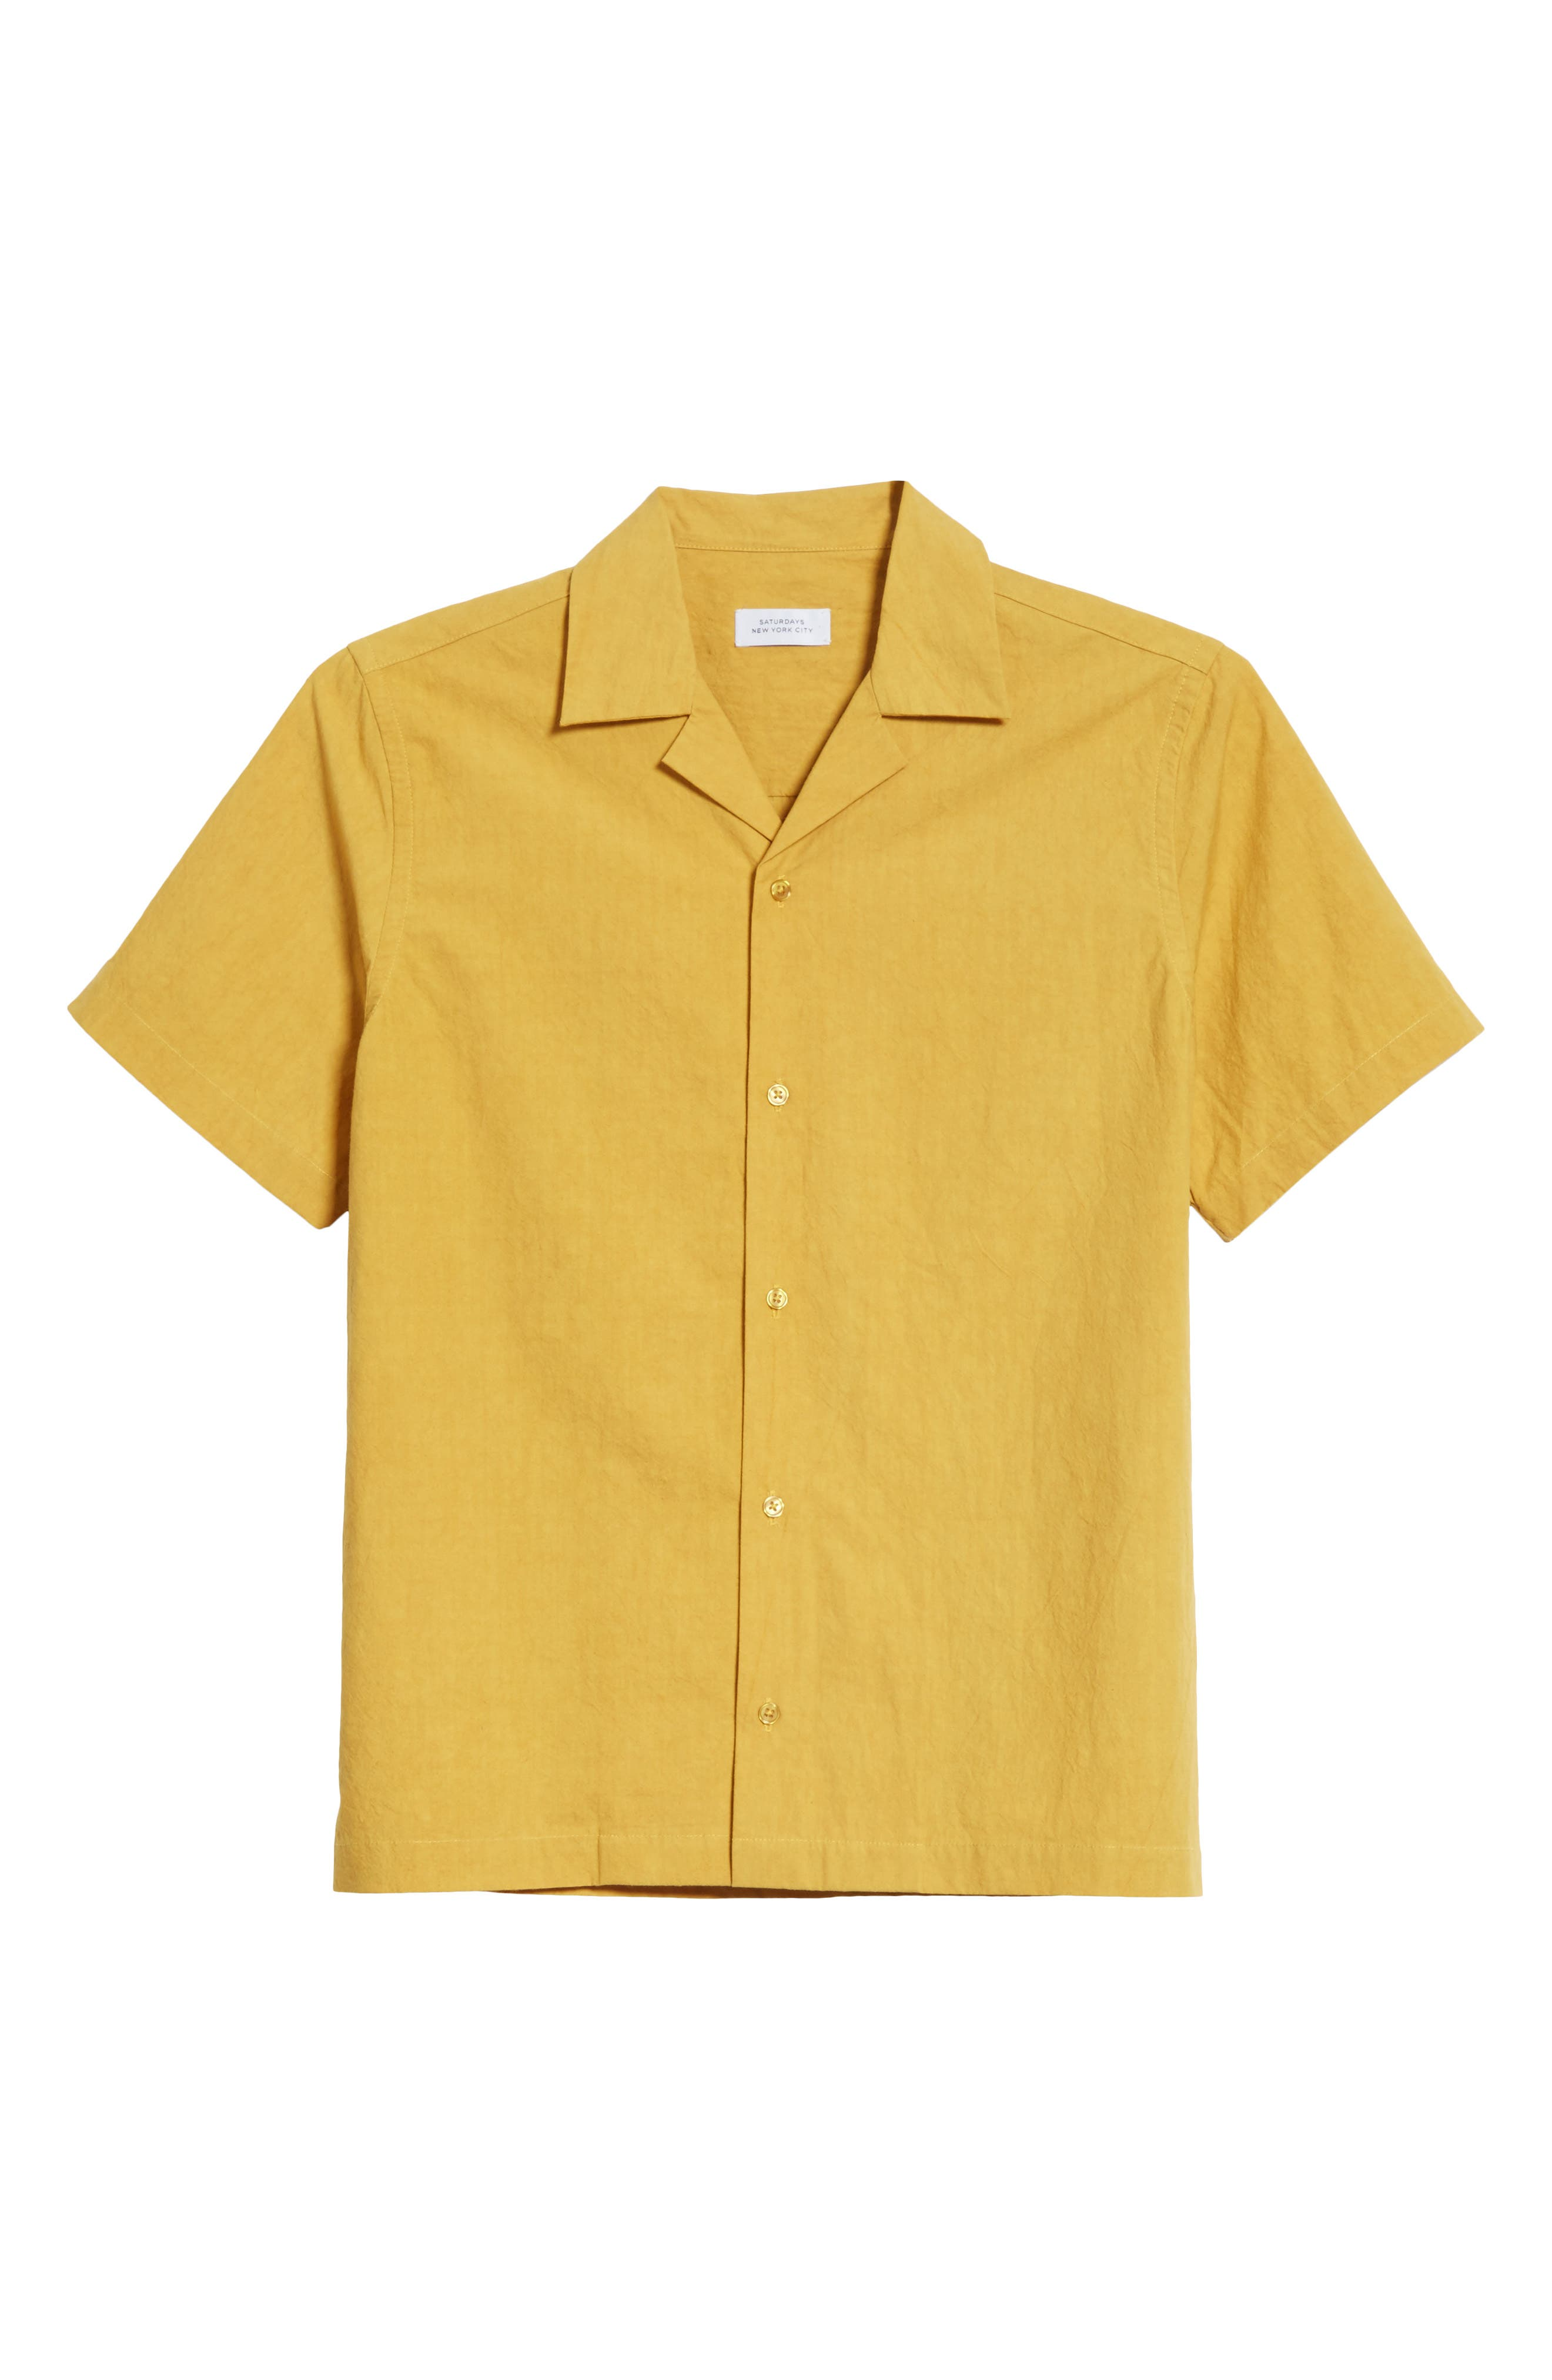 Canty Woven Camp Shirt,                             Alternate thumbnail 6, color,                             725